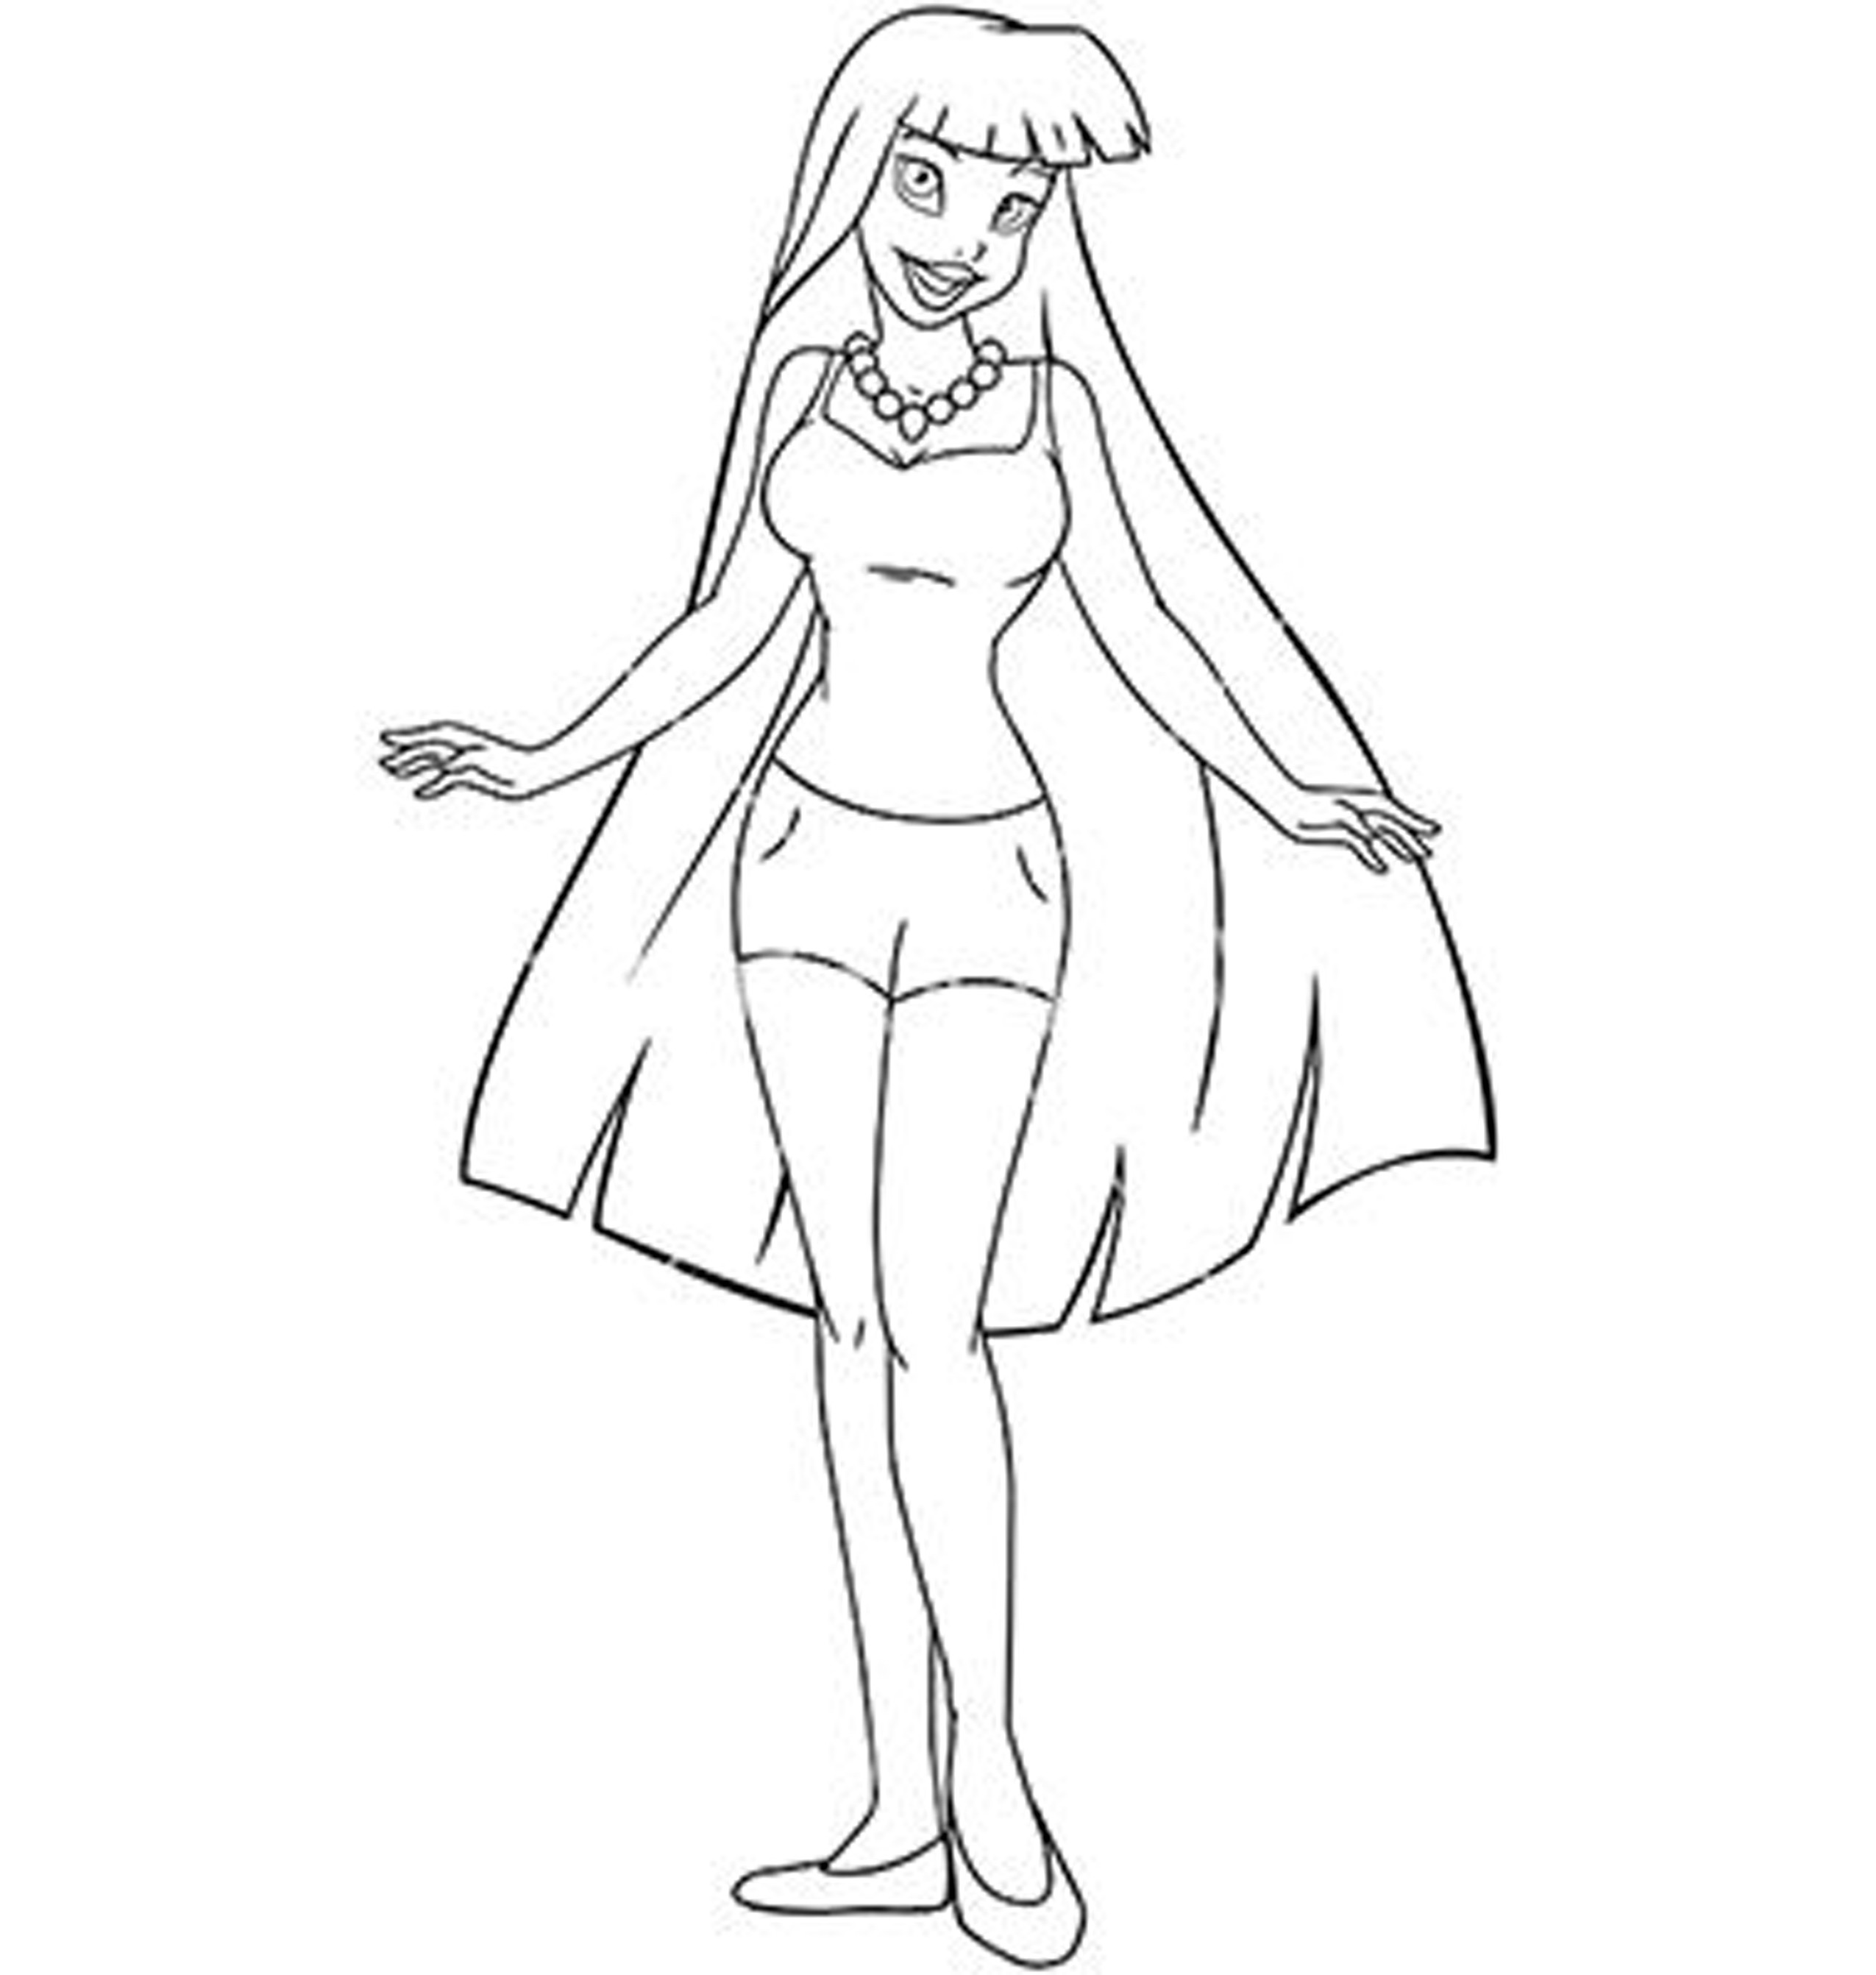 Best ideas about Fashion Coloring Pages For Girls . Save or Pin Fashion Coloring Pages coloringsuite Now.